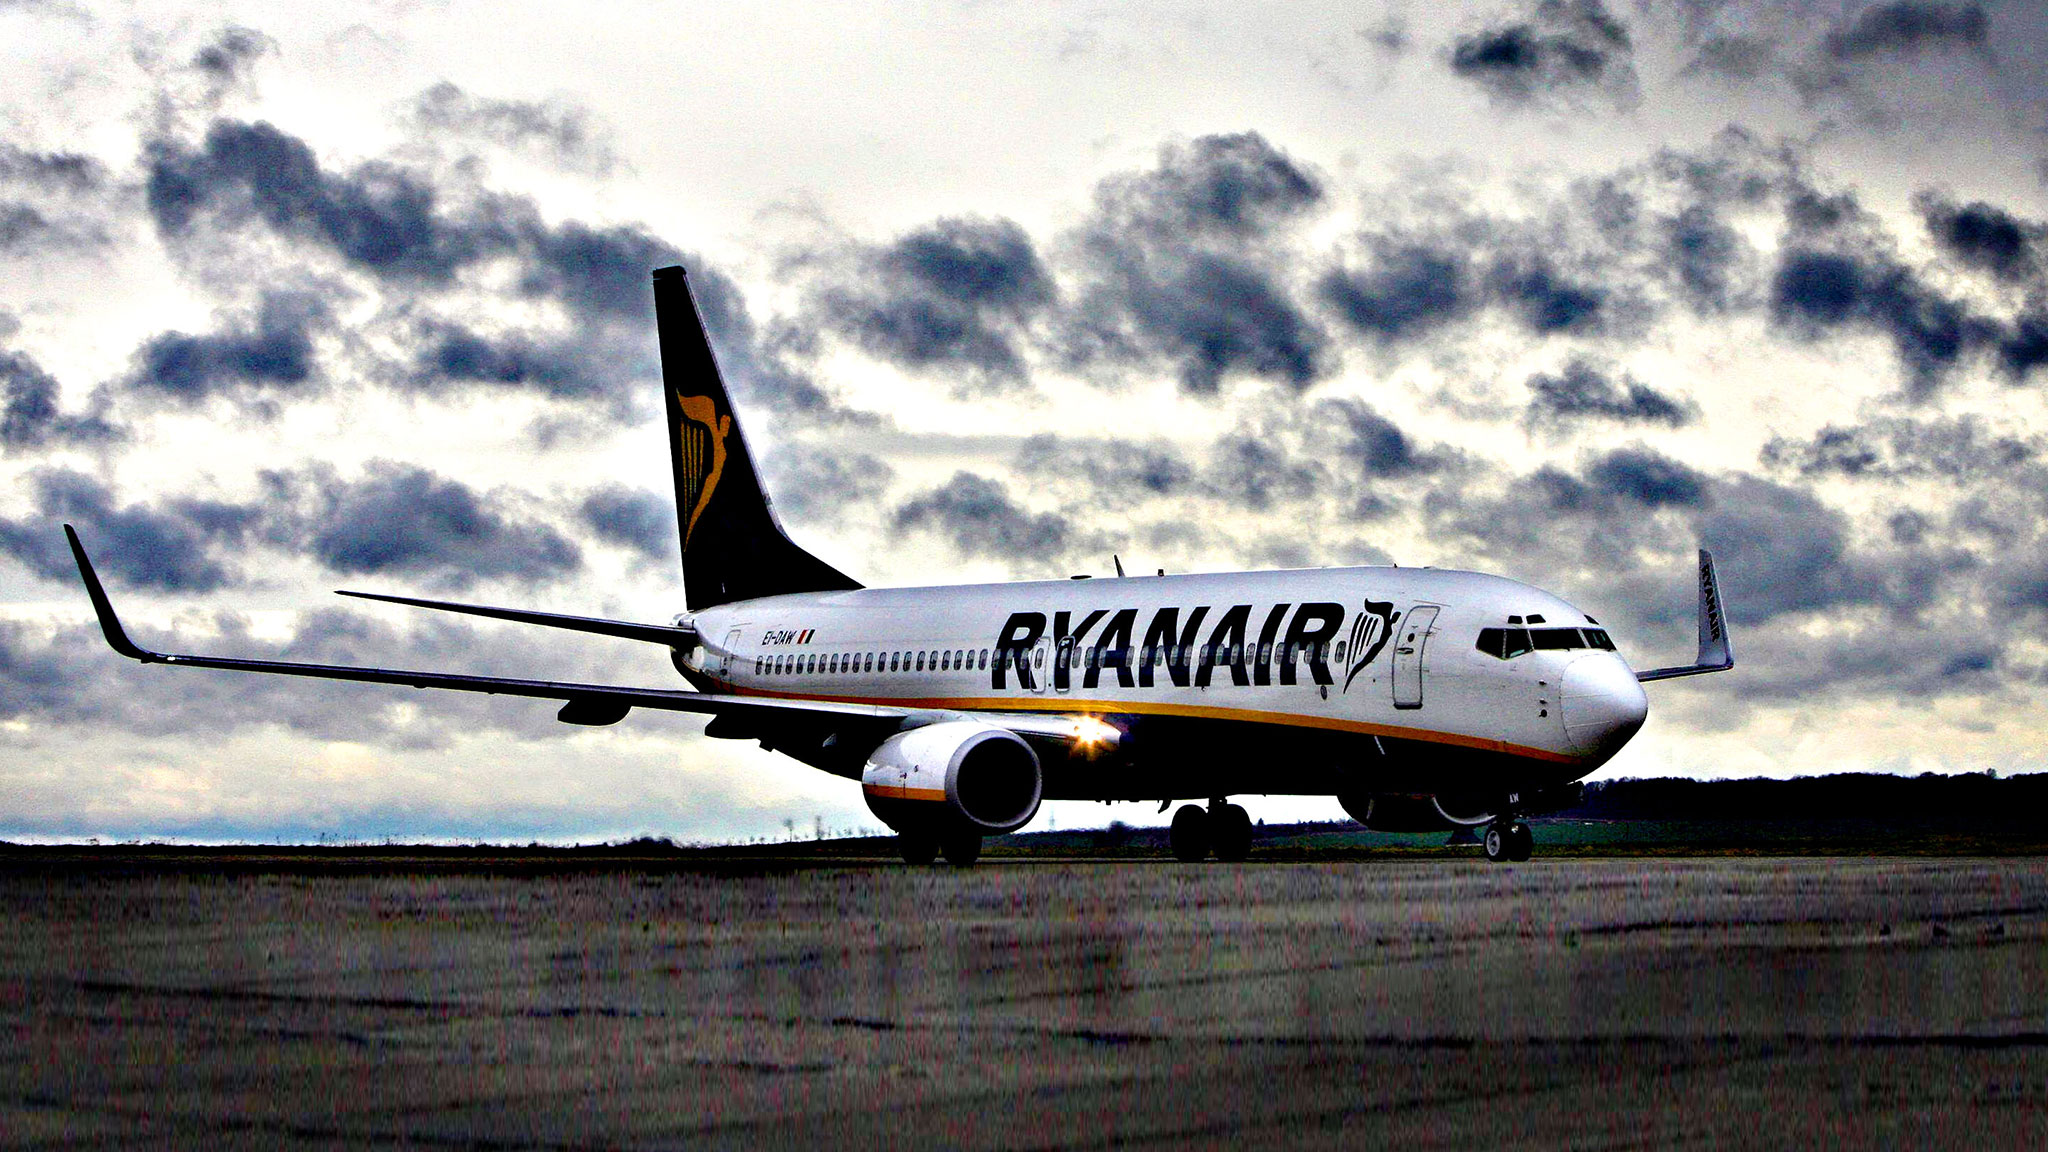 ryanair the low fares airline